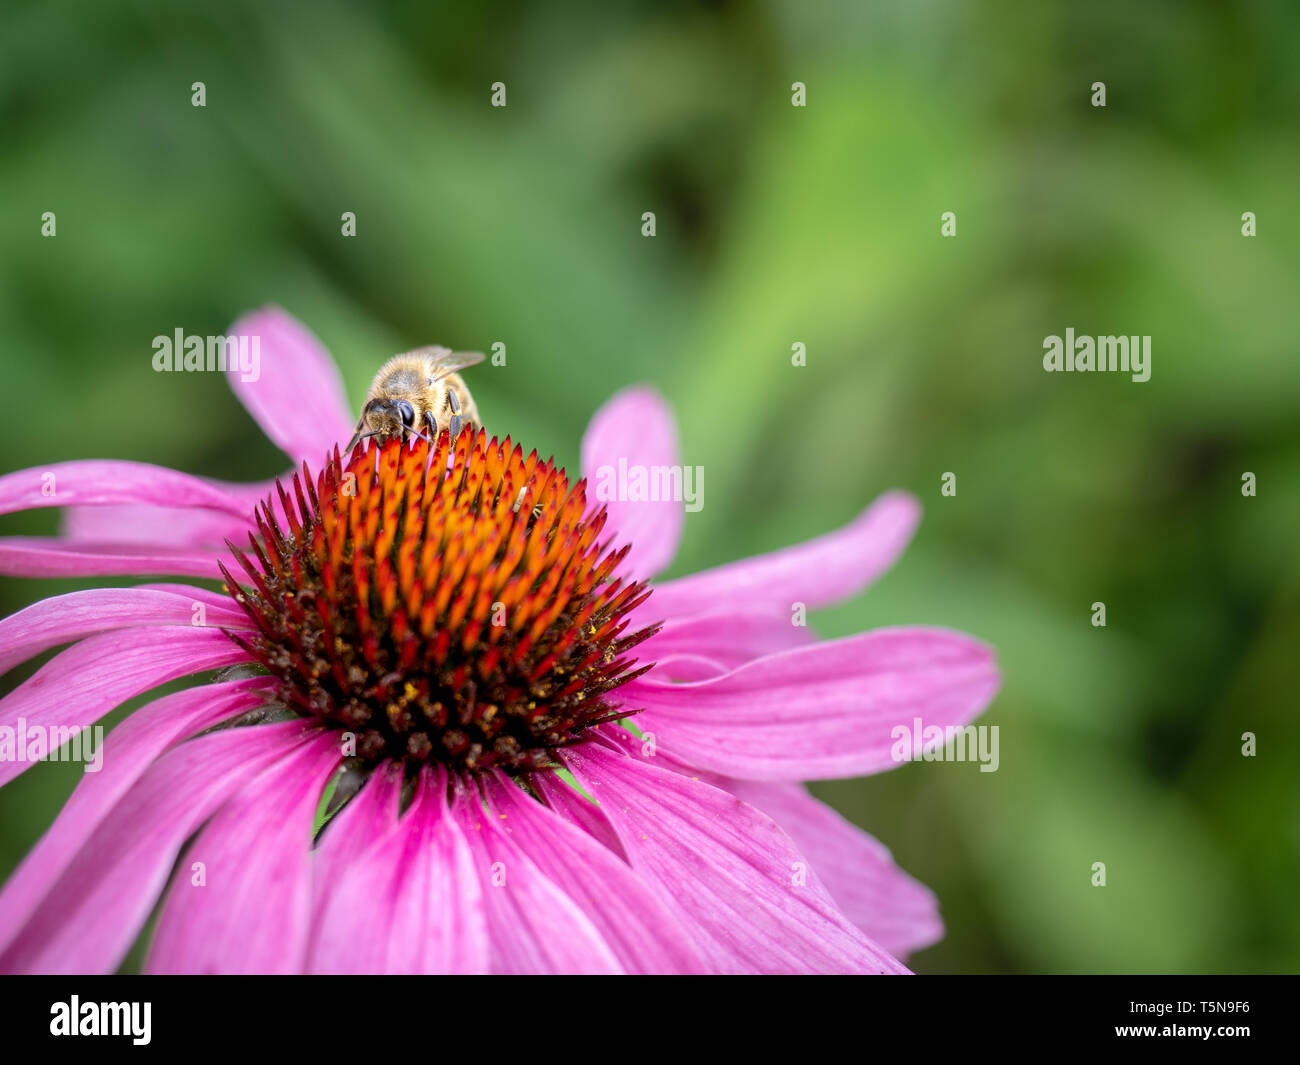 Bee collecting pollen on a eastern purple coneflower flower. Pollinating - Stock Image